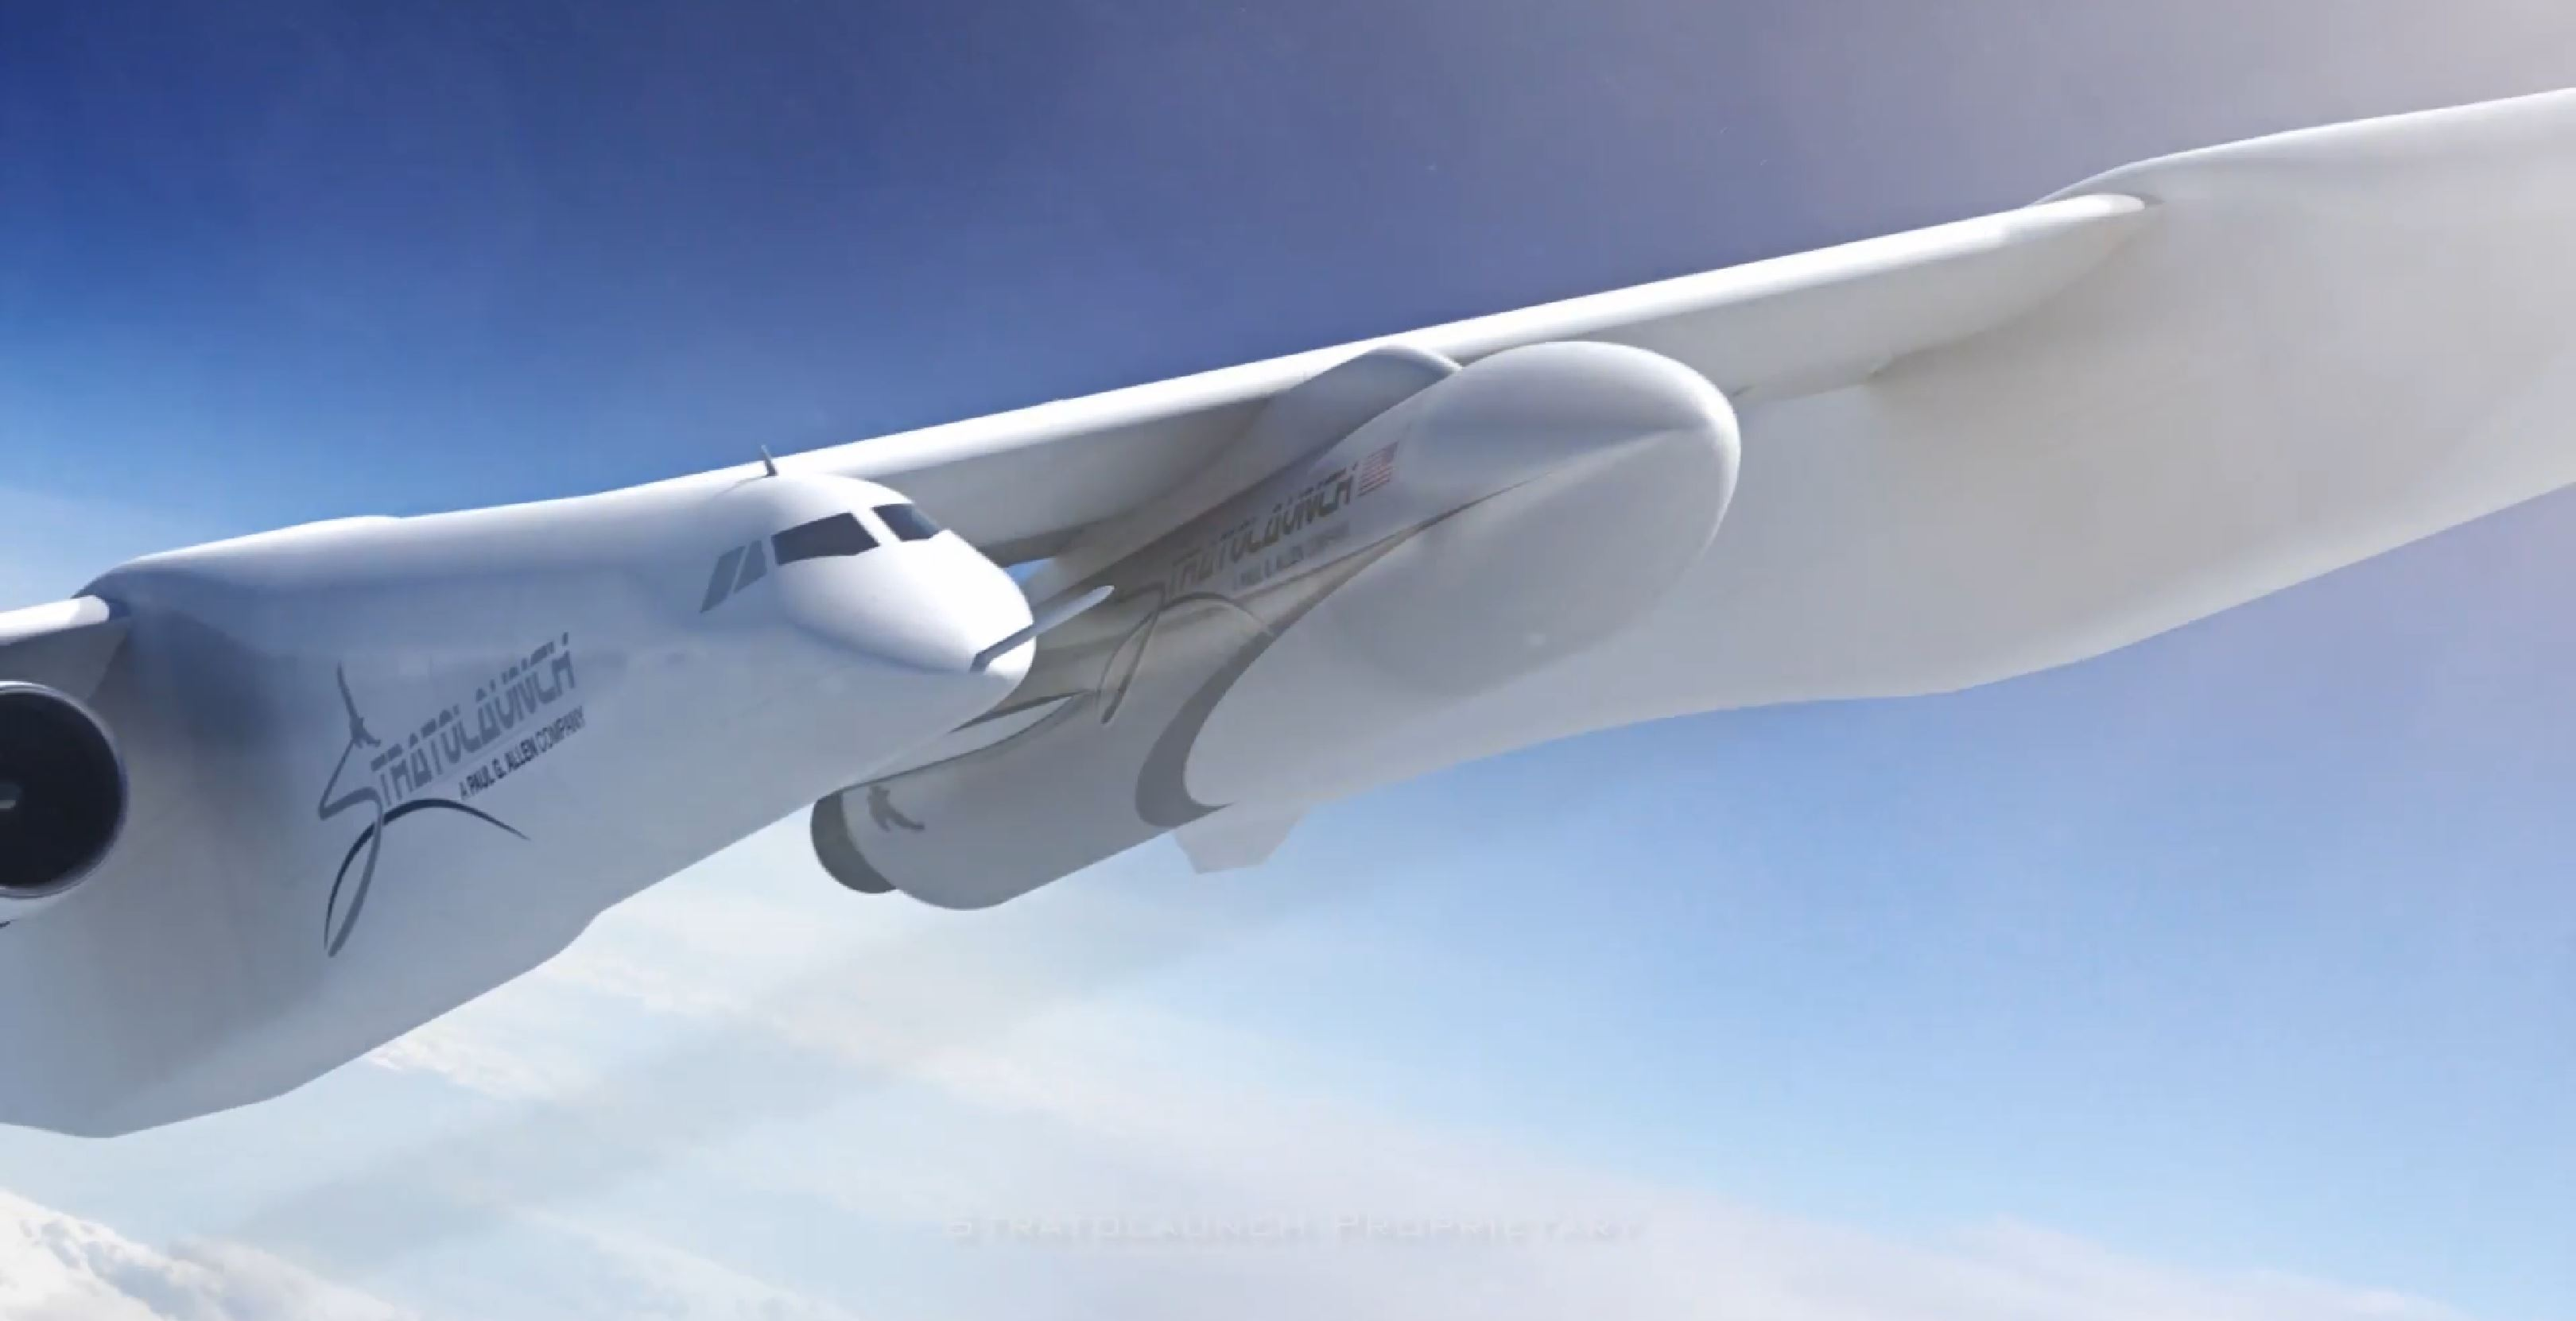 Roc and rocket (Stratolaunch) 2